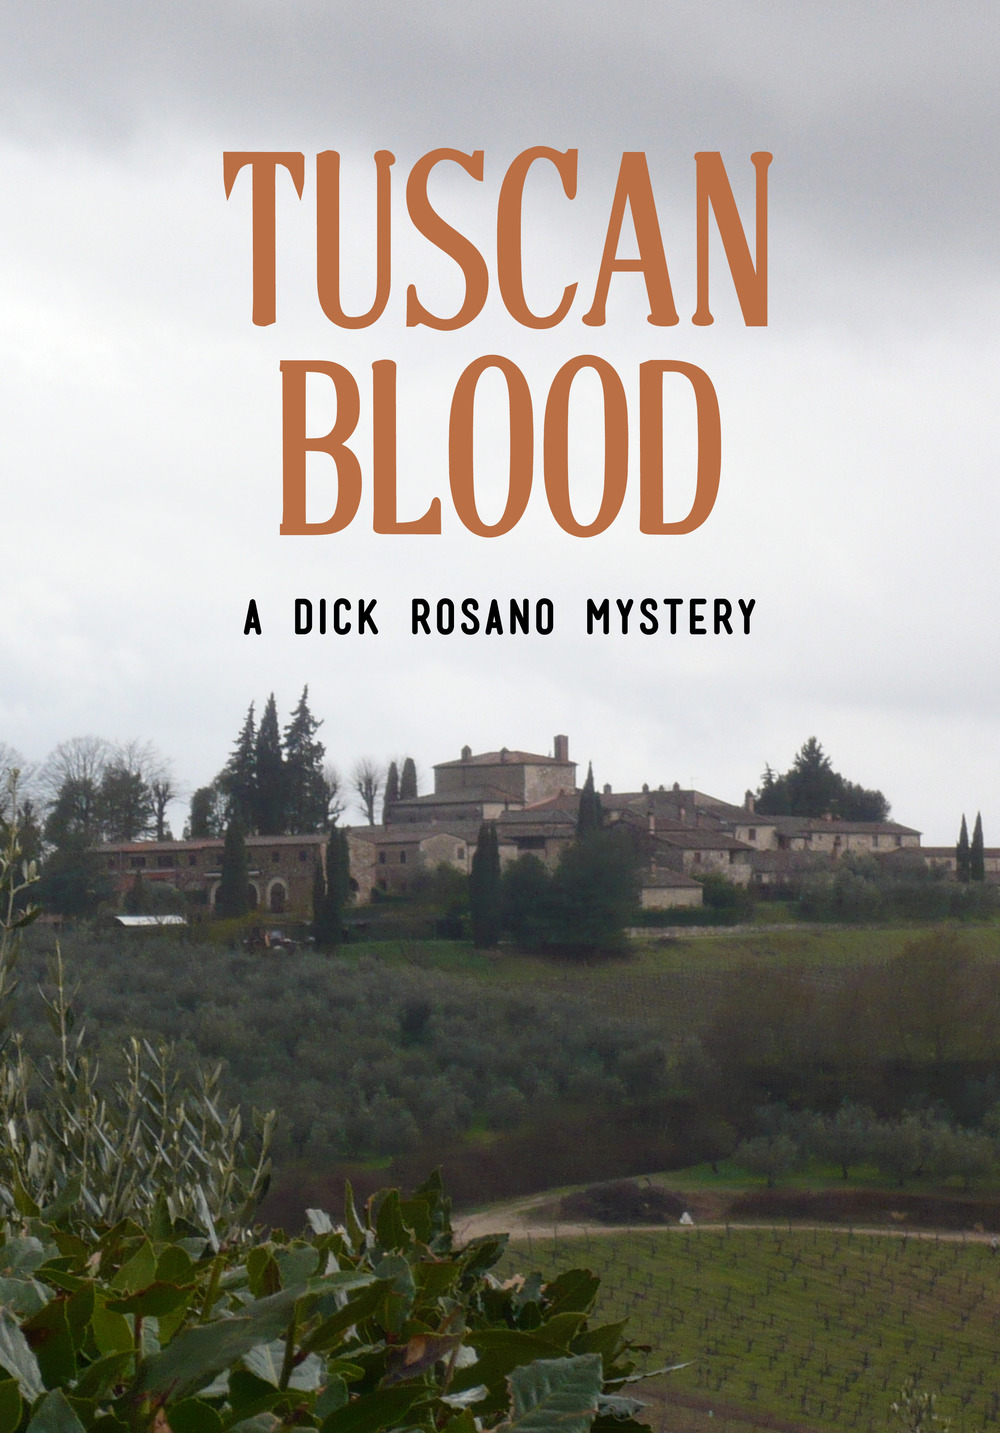 Tuscan_Blood_Cover.jpg